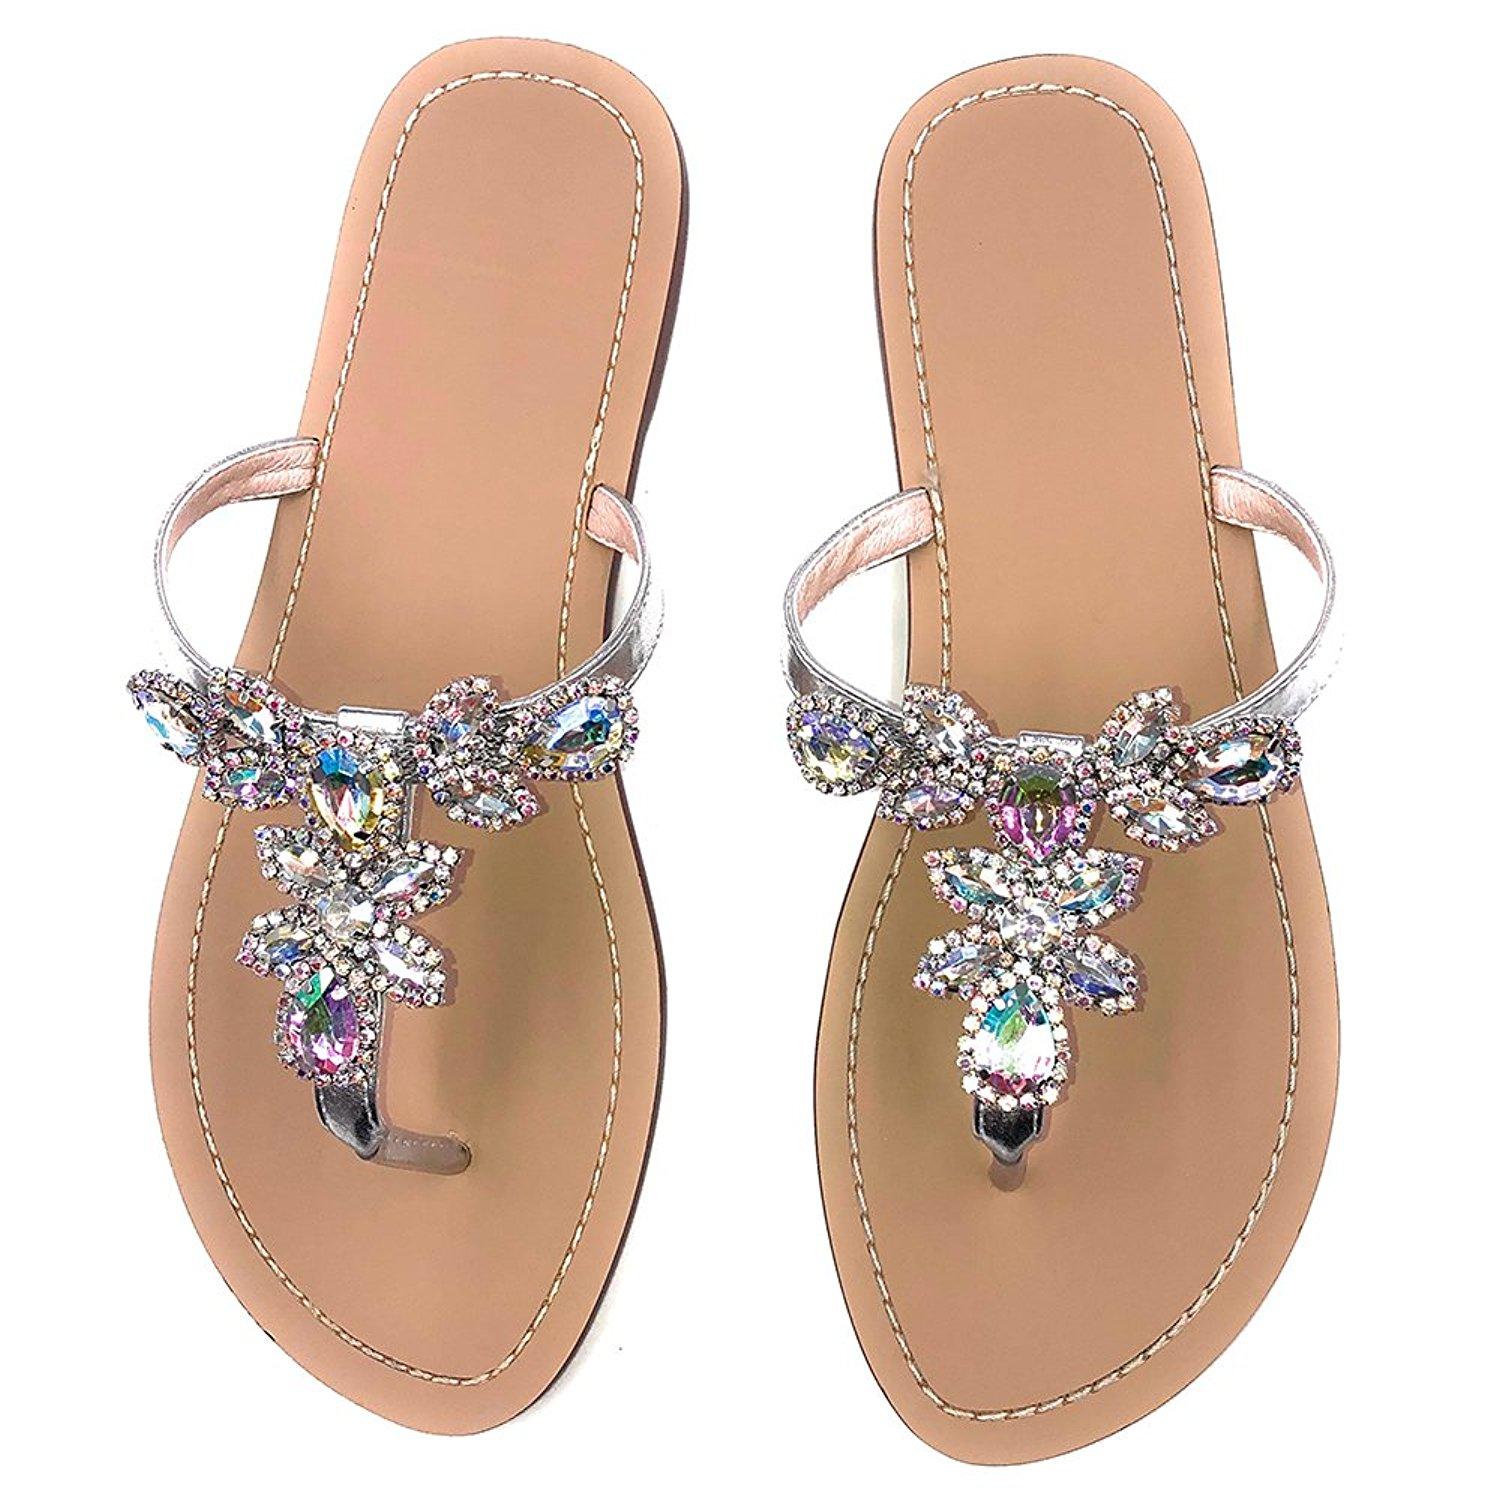 23a7eed4736d31 Get Quotations · azmodo Women s Silver Jeweled Hand Crafted Crystal Flip  Flops Rhinestones Flats Sandals Y22